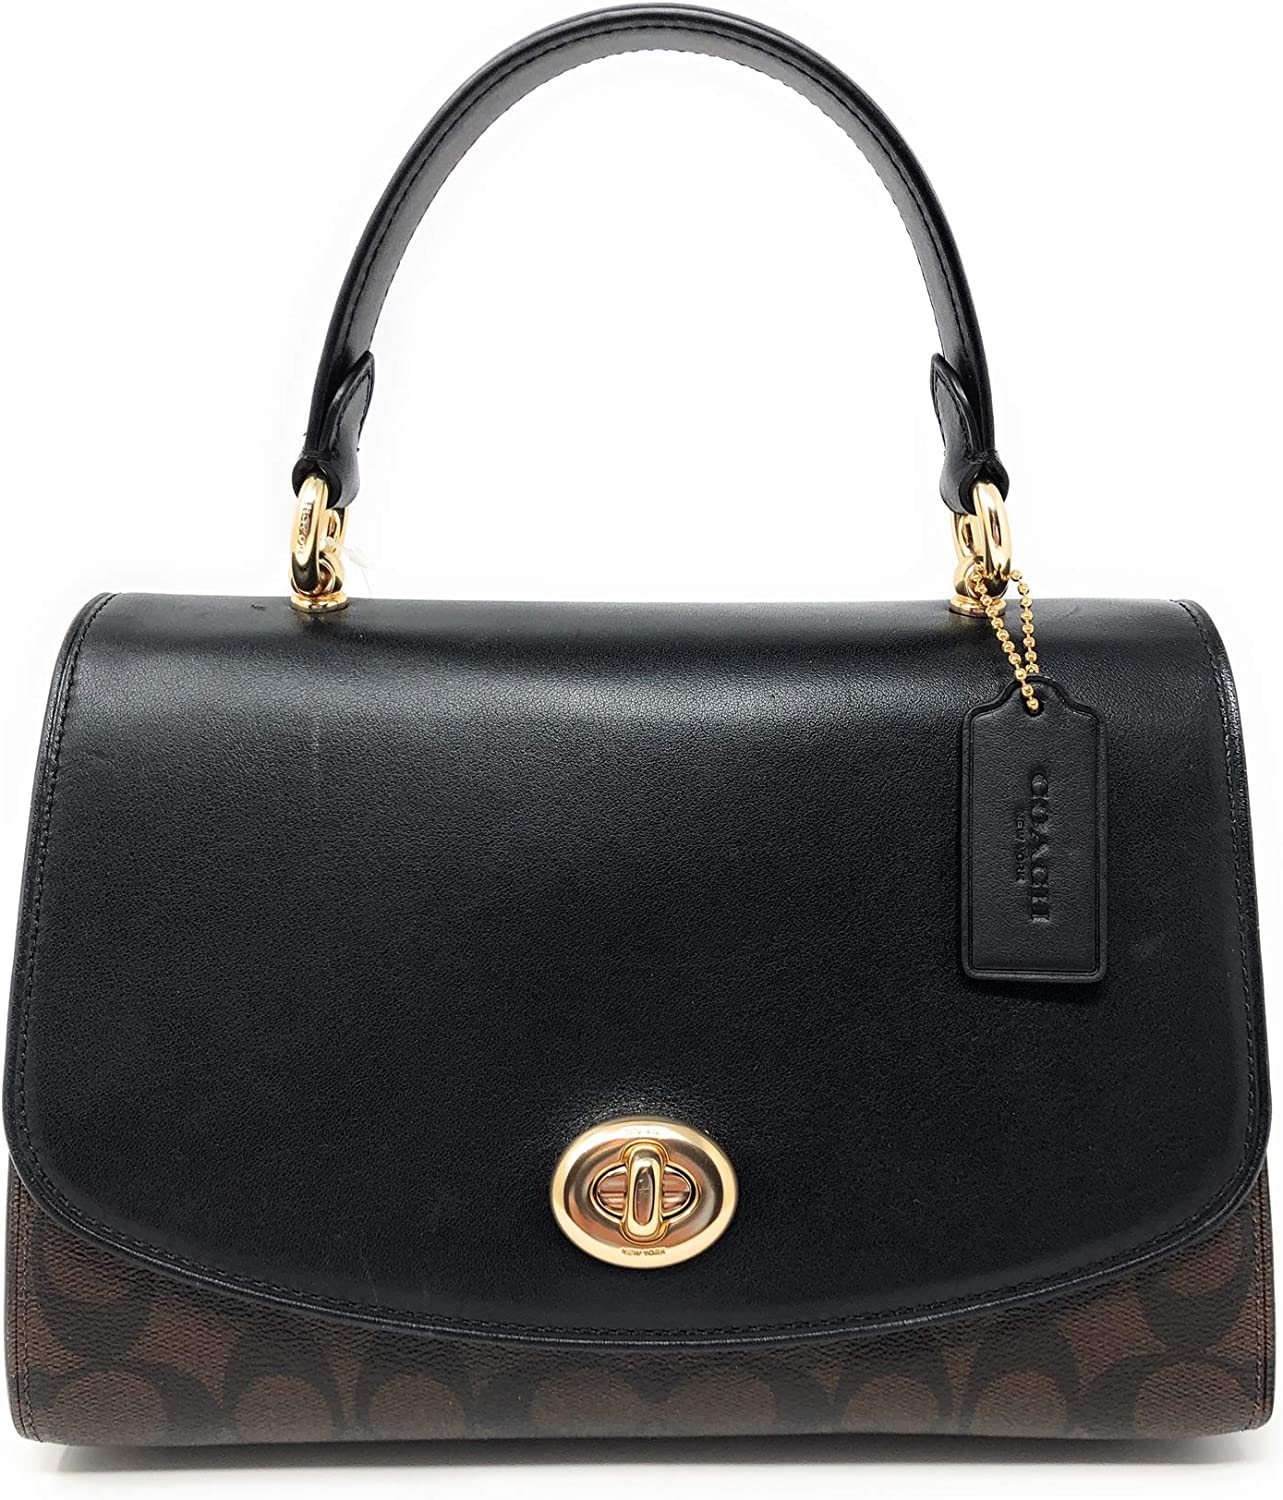 COACH Signature Tilly Top-Handle Satchel